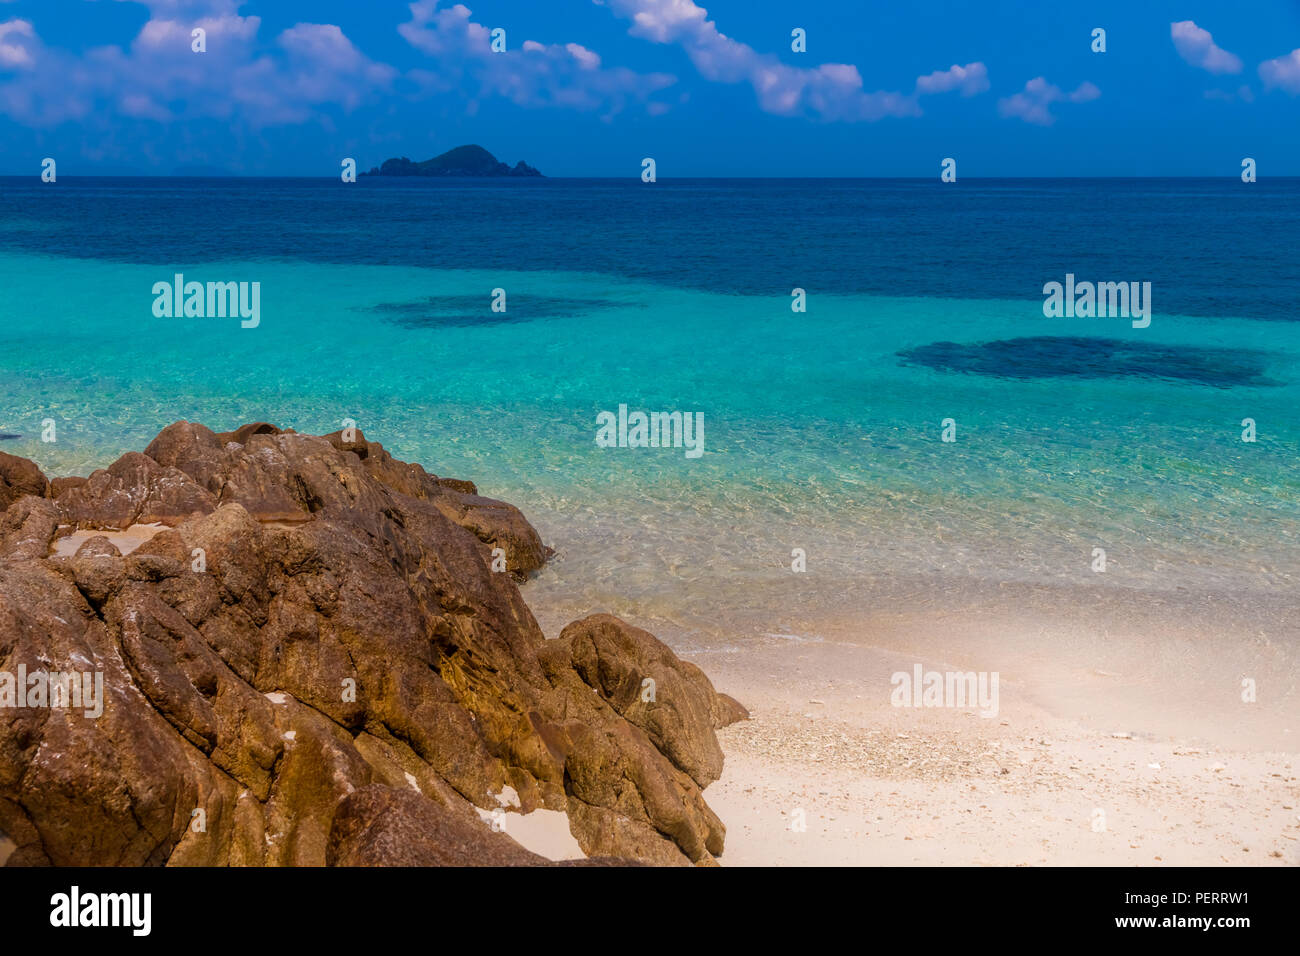 Beautiful scenery of the turquoise blue sea, the white powdery sand and the rock reaching out to the shallow clear water glimmering in front of Rawa... - Stock Image